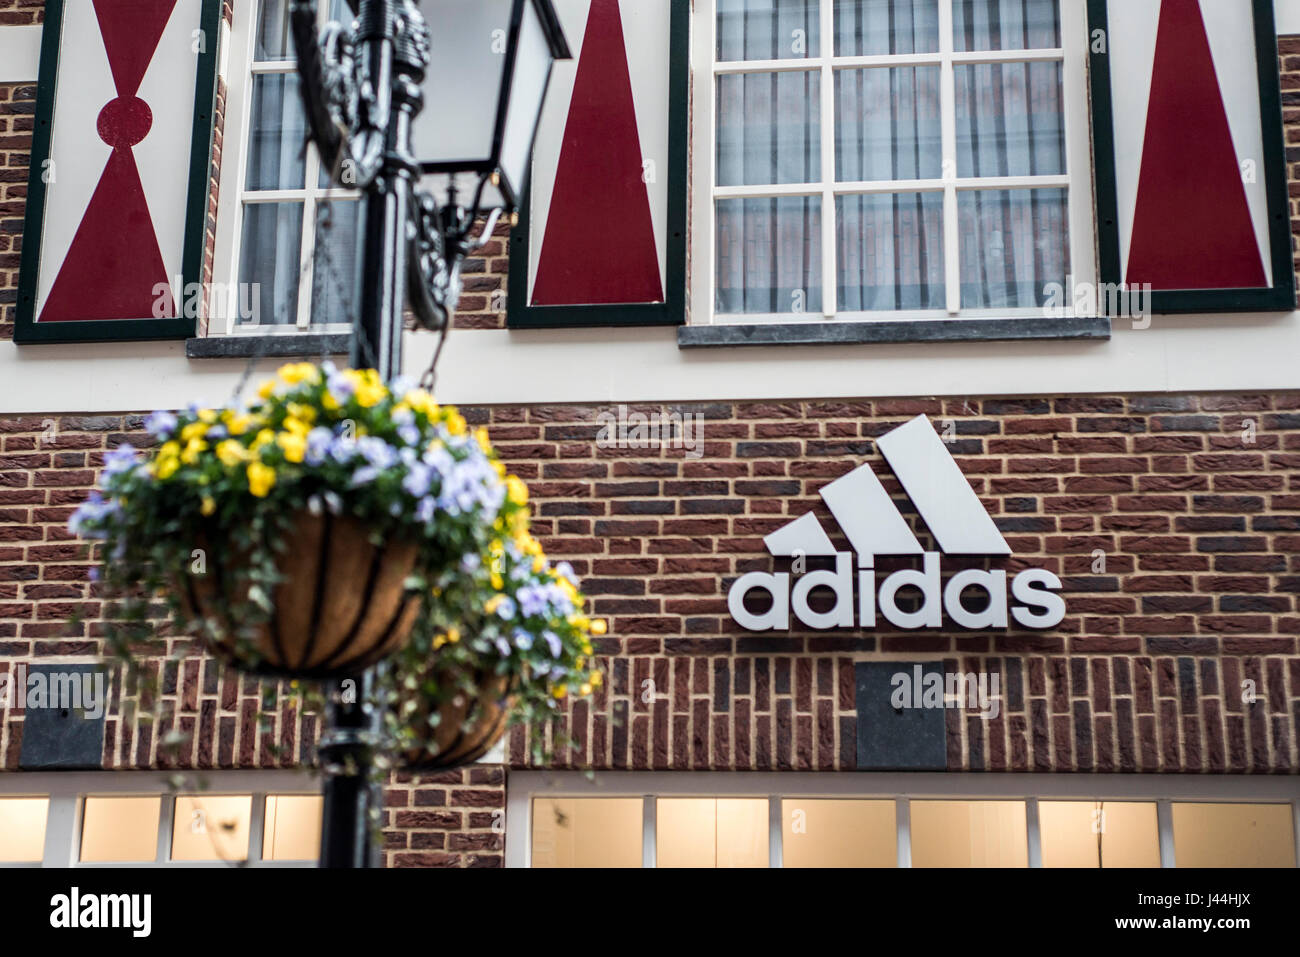 aeffcabb7534 Roermond Netherlands 07.05.2017 - Logo of the adidas brick house Store in  the Mc Arthur Glen Designer Outlet shopping area